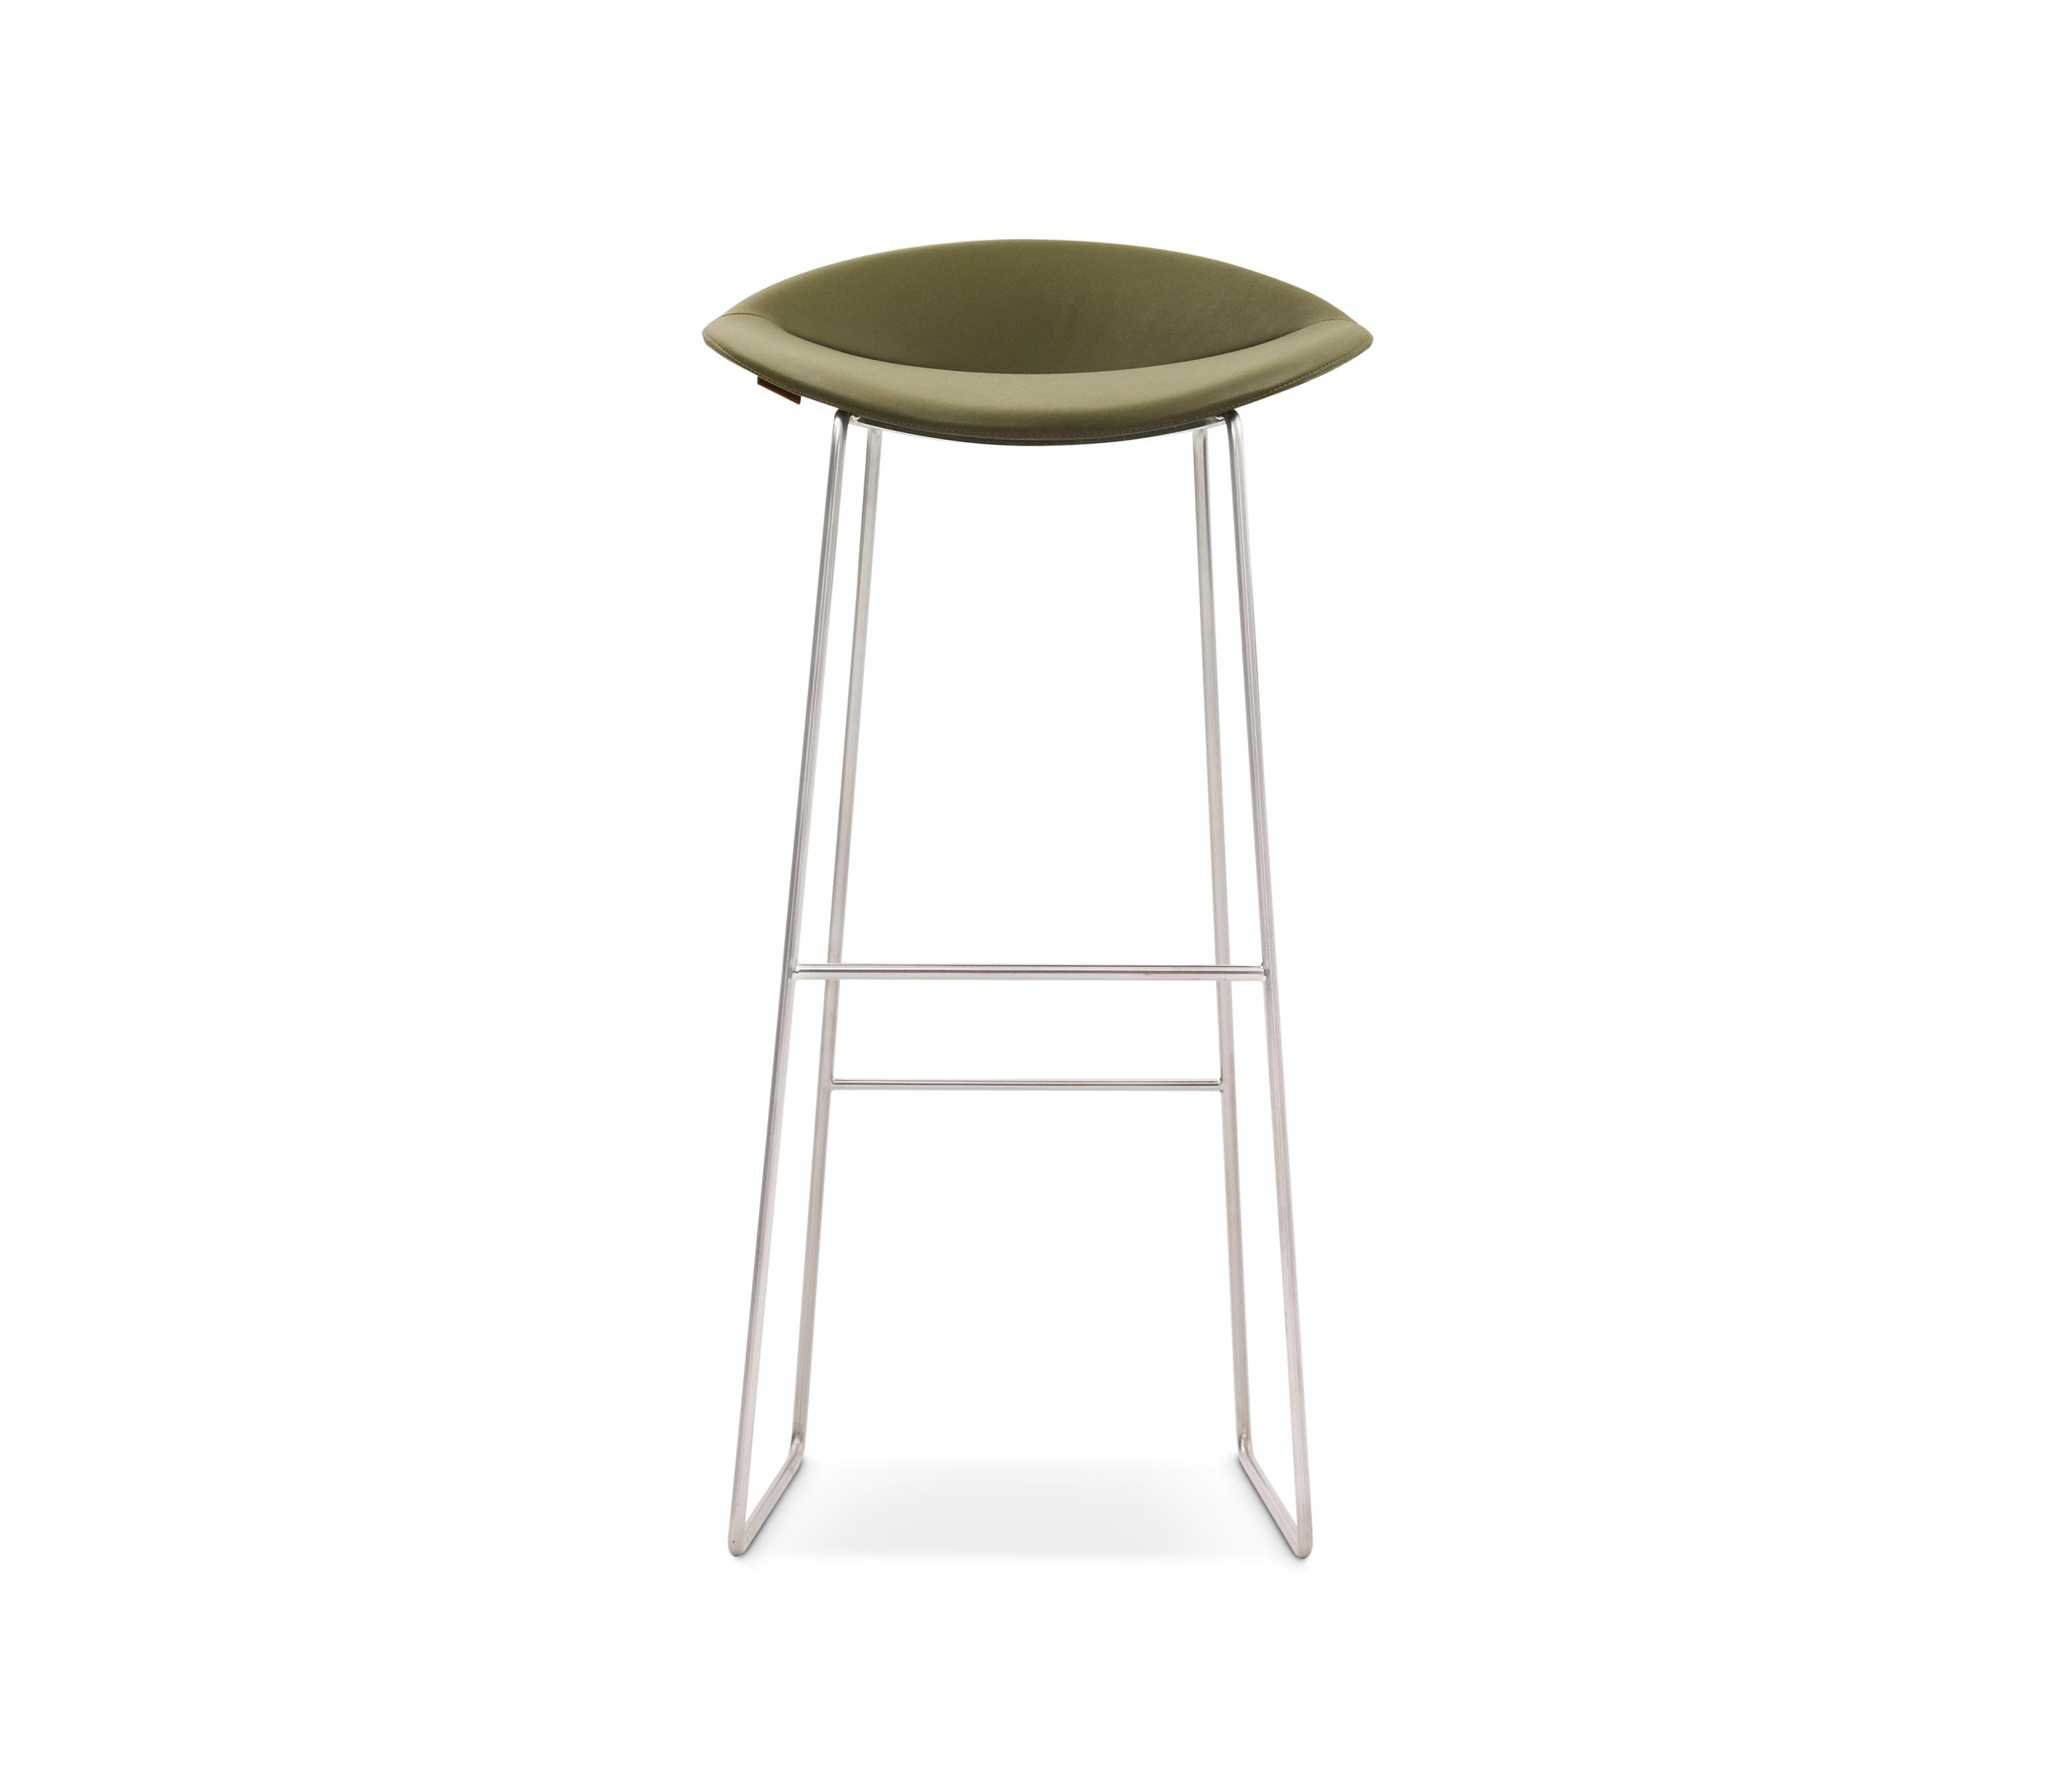 Swell Mick Bar Stools From Montis Architonic Andrewgaddart Wooden Chair Designs For Living Room Andrewgaddartcom